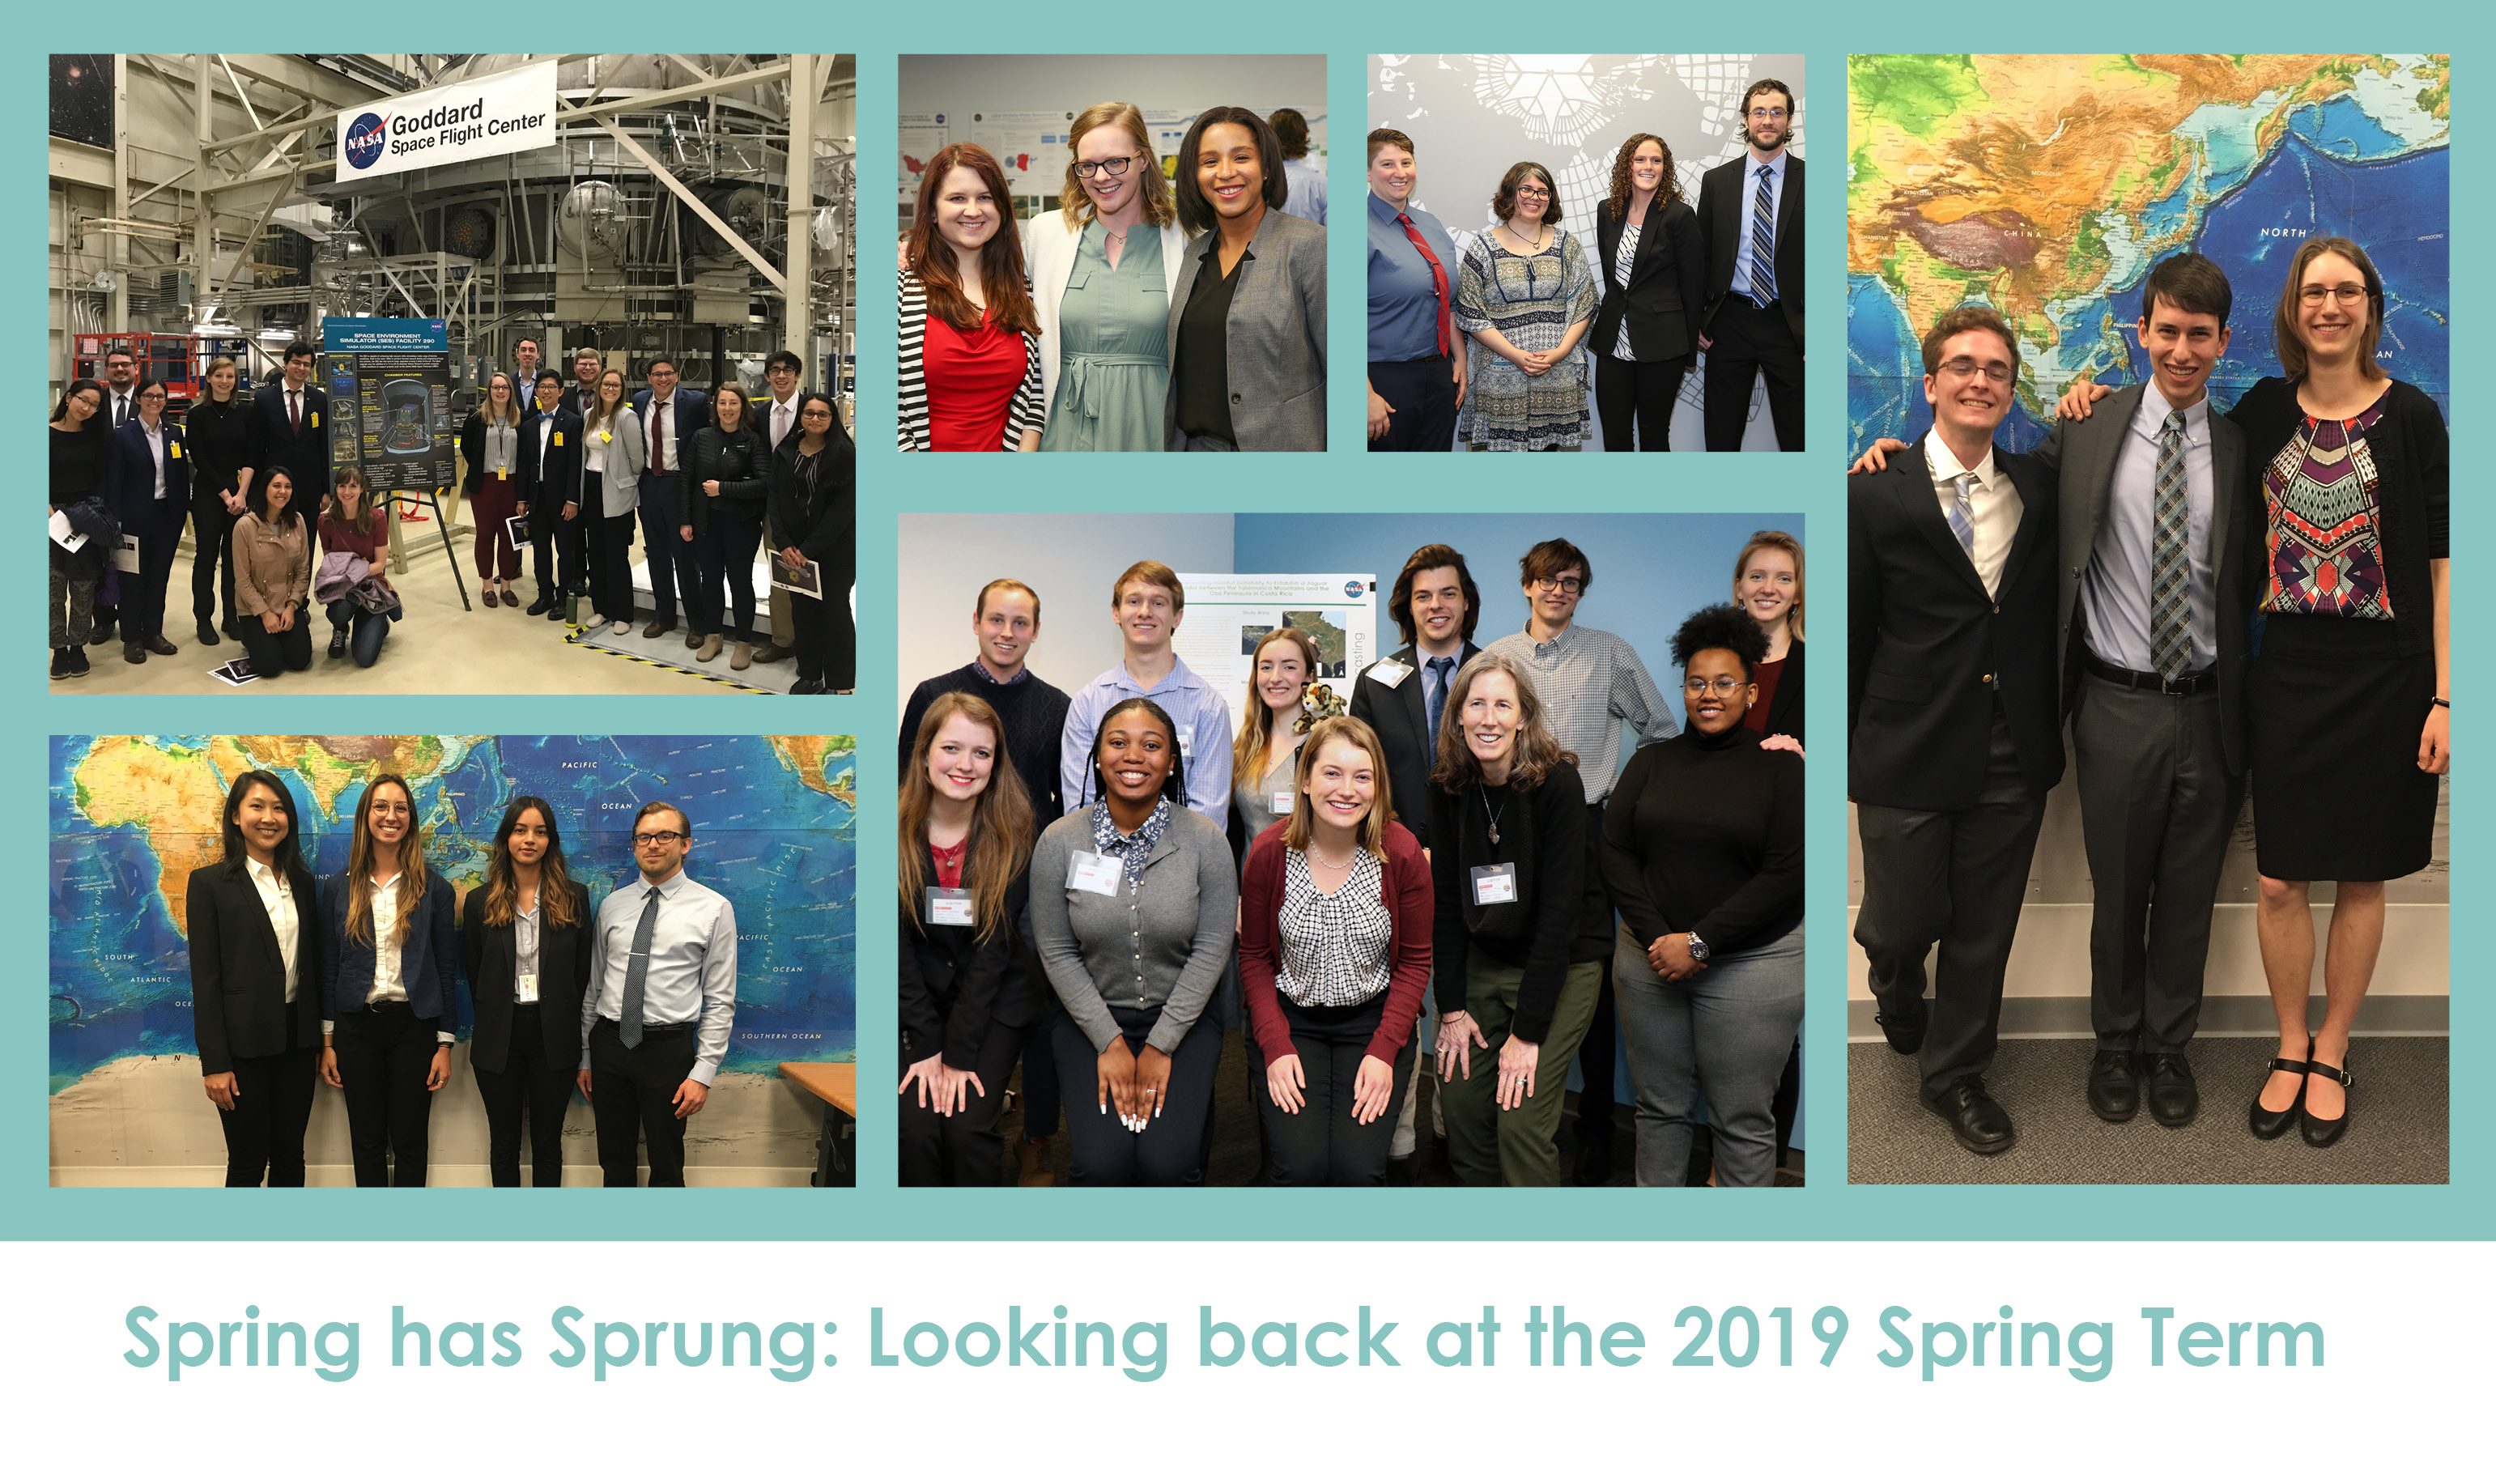 Spring has Sprung: Looking Back at the 2019 Spring Term